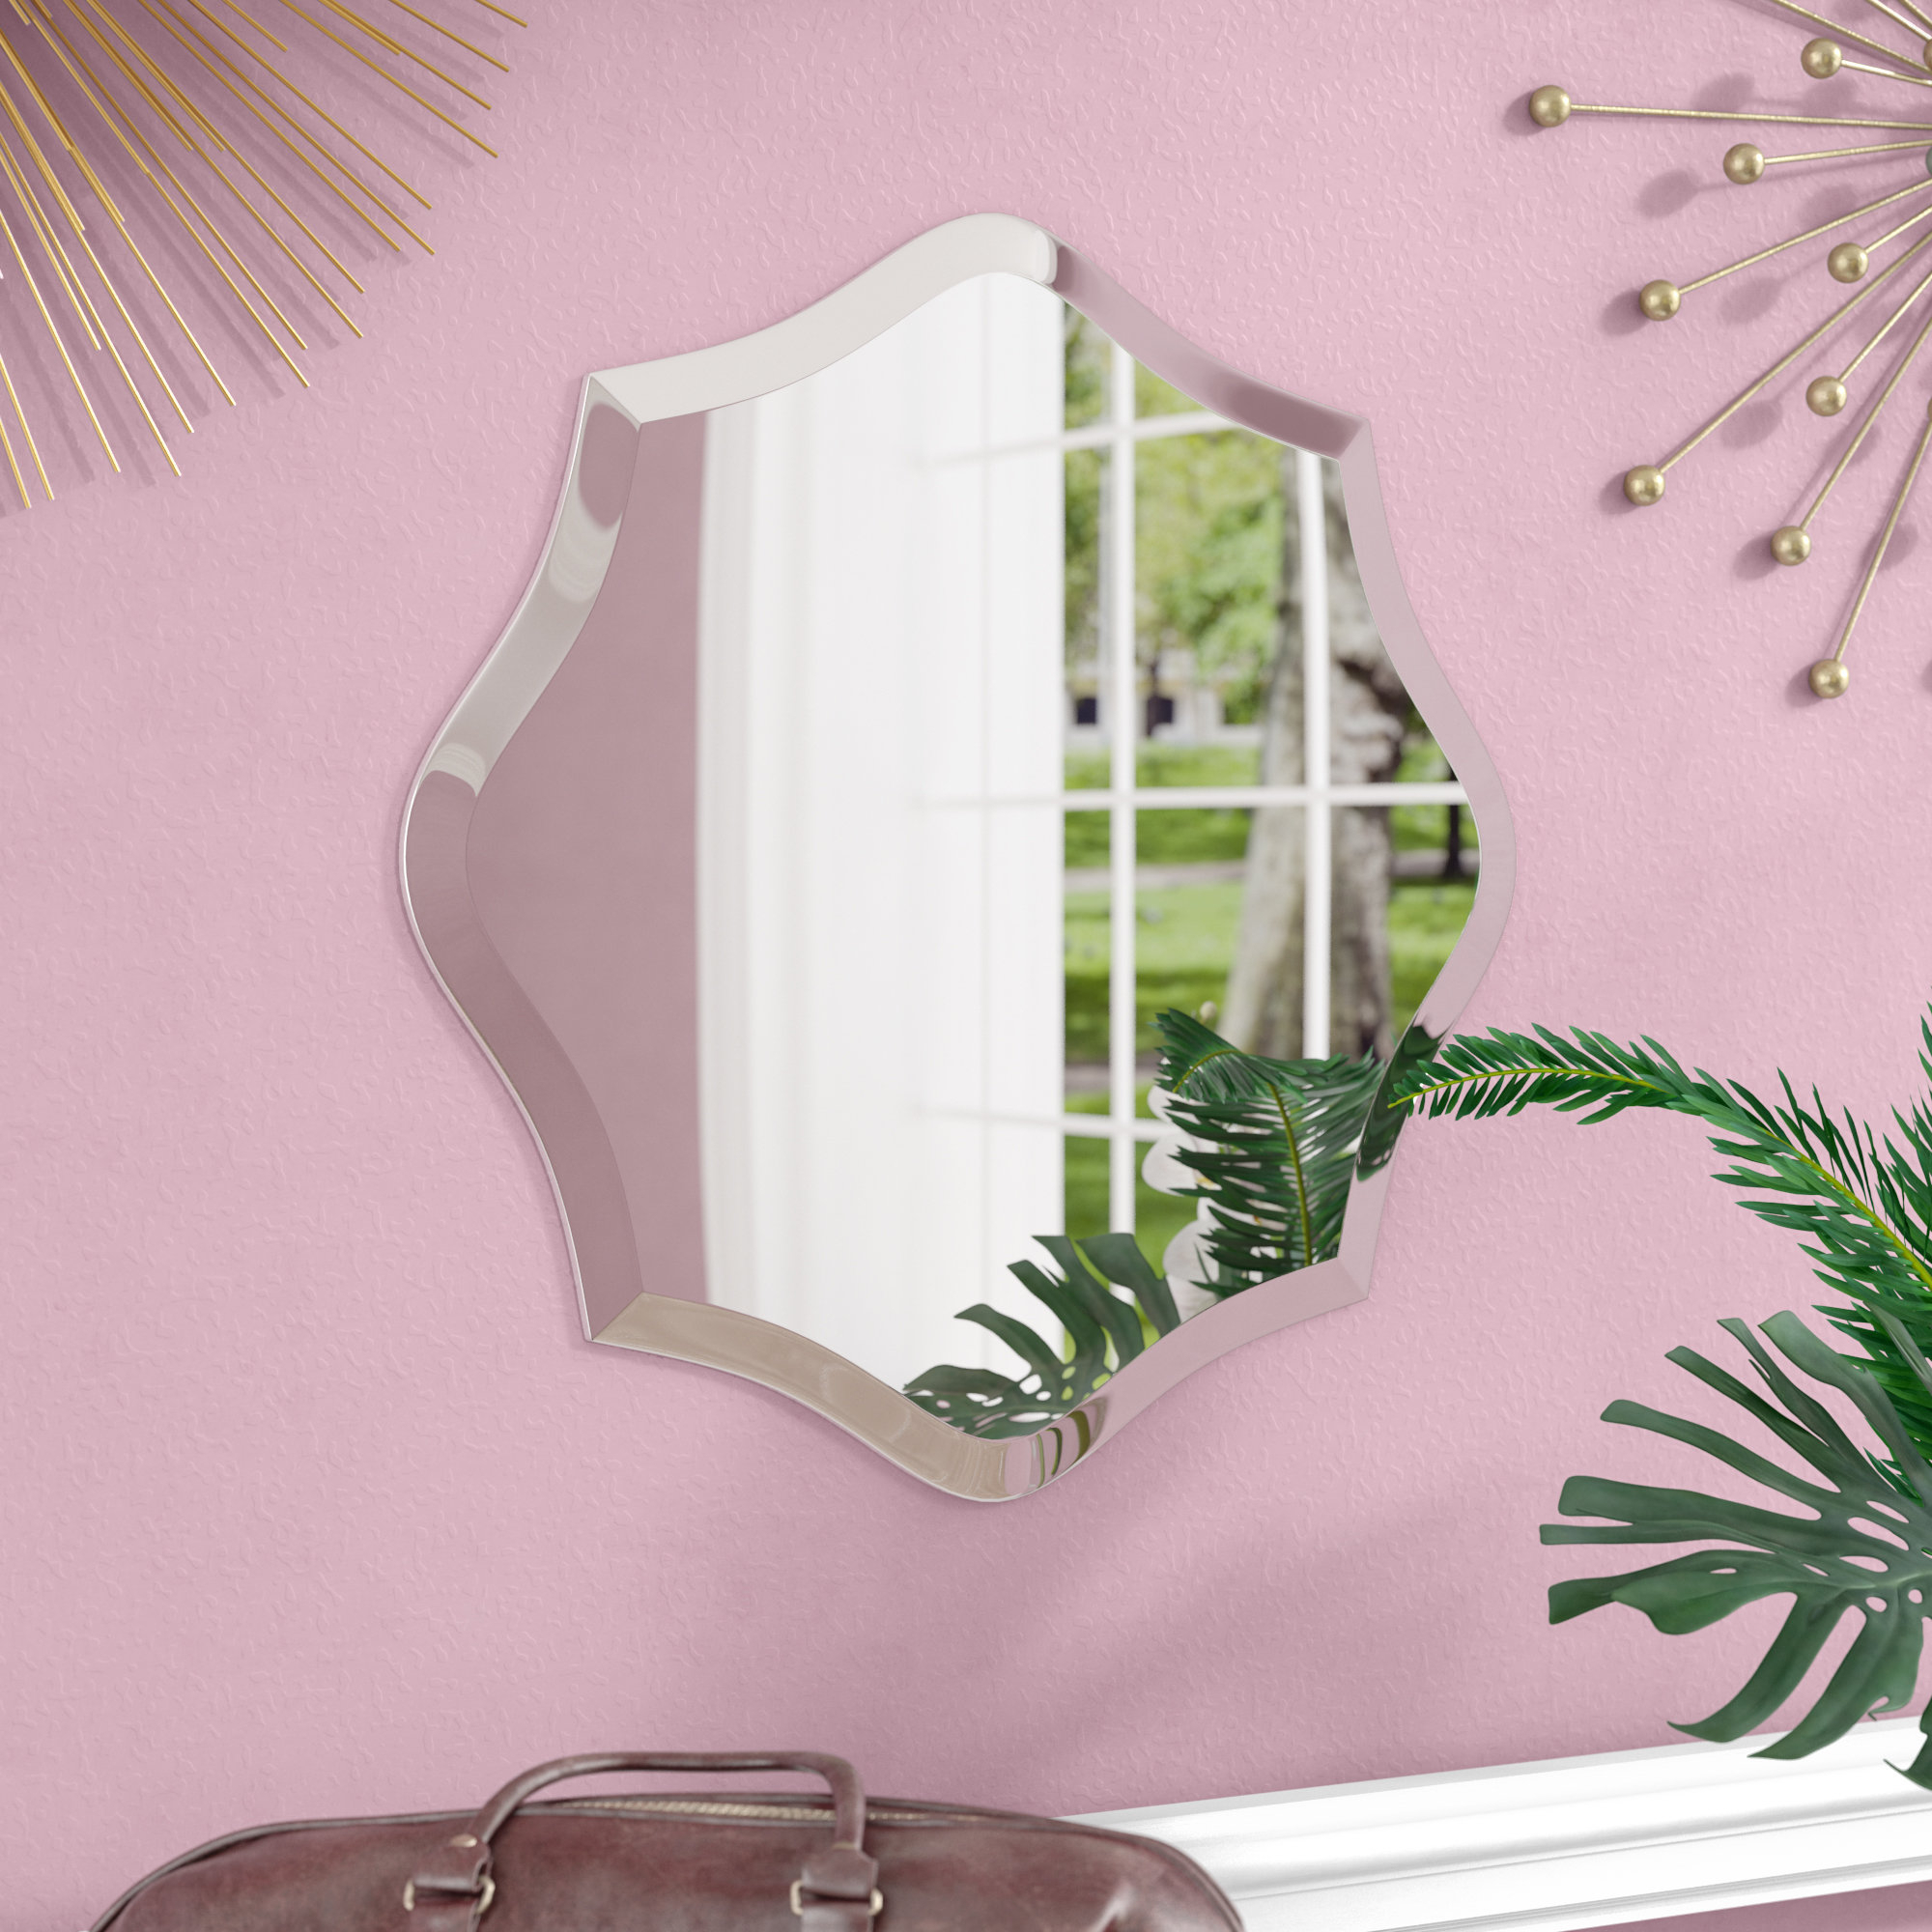 Willa Arlo Interiors Egor Accent Mirror & Reviews | Wayfair (View 16 of 30)